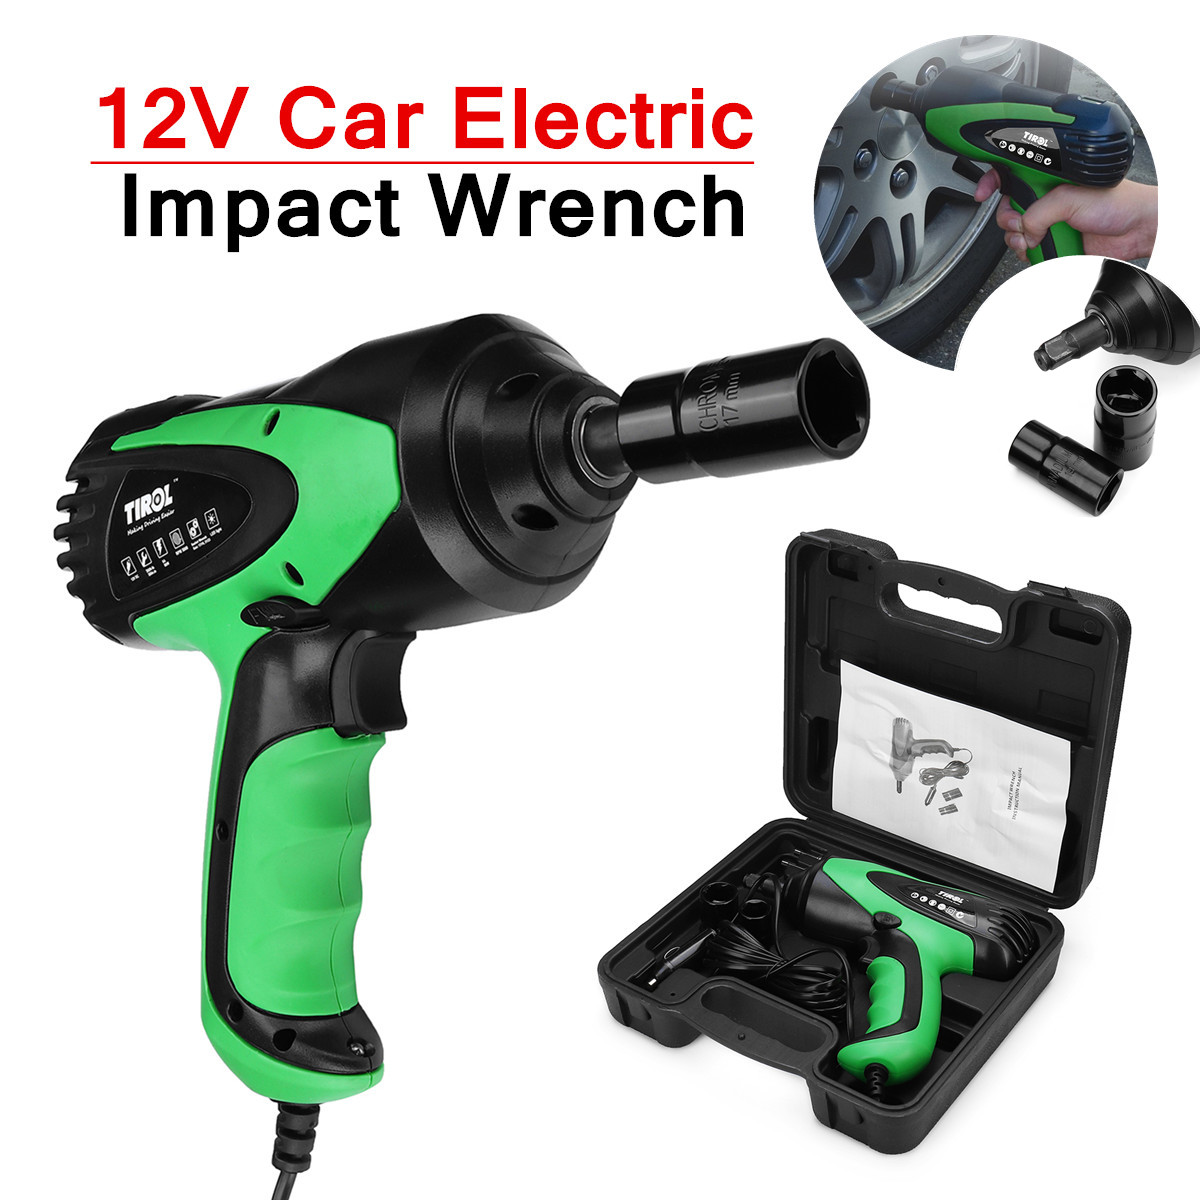 12V Portable Electric Impact Wrenche Emergency Roadside Car Power Kit Tools+Case